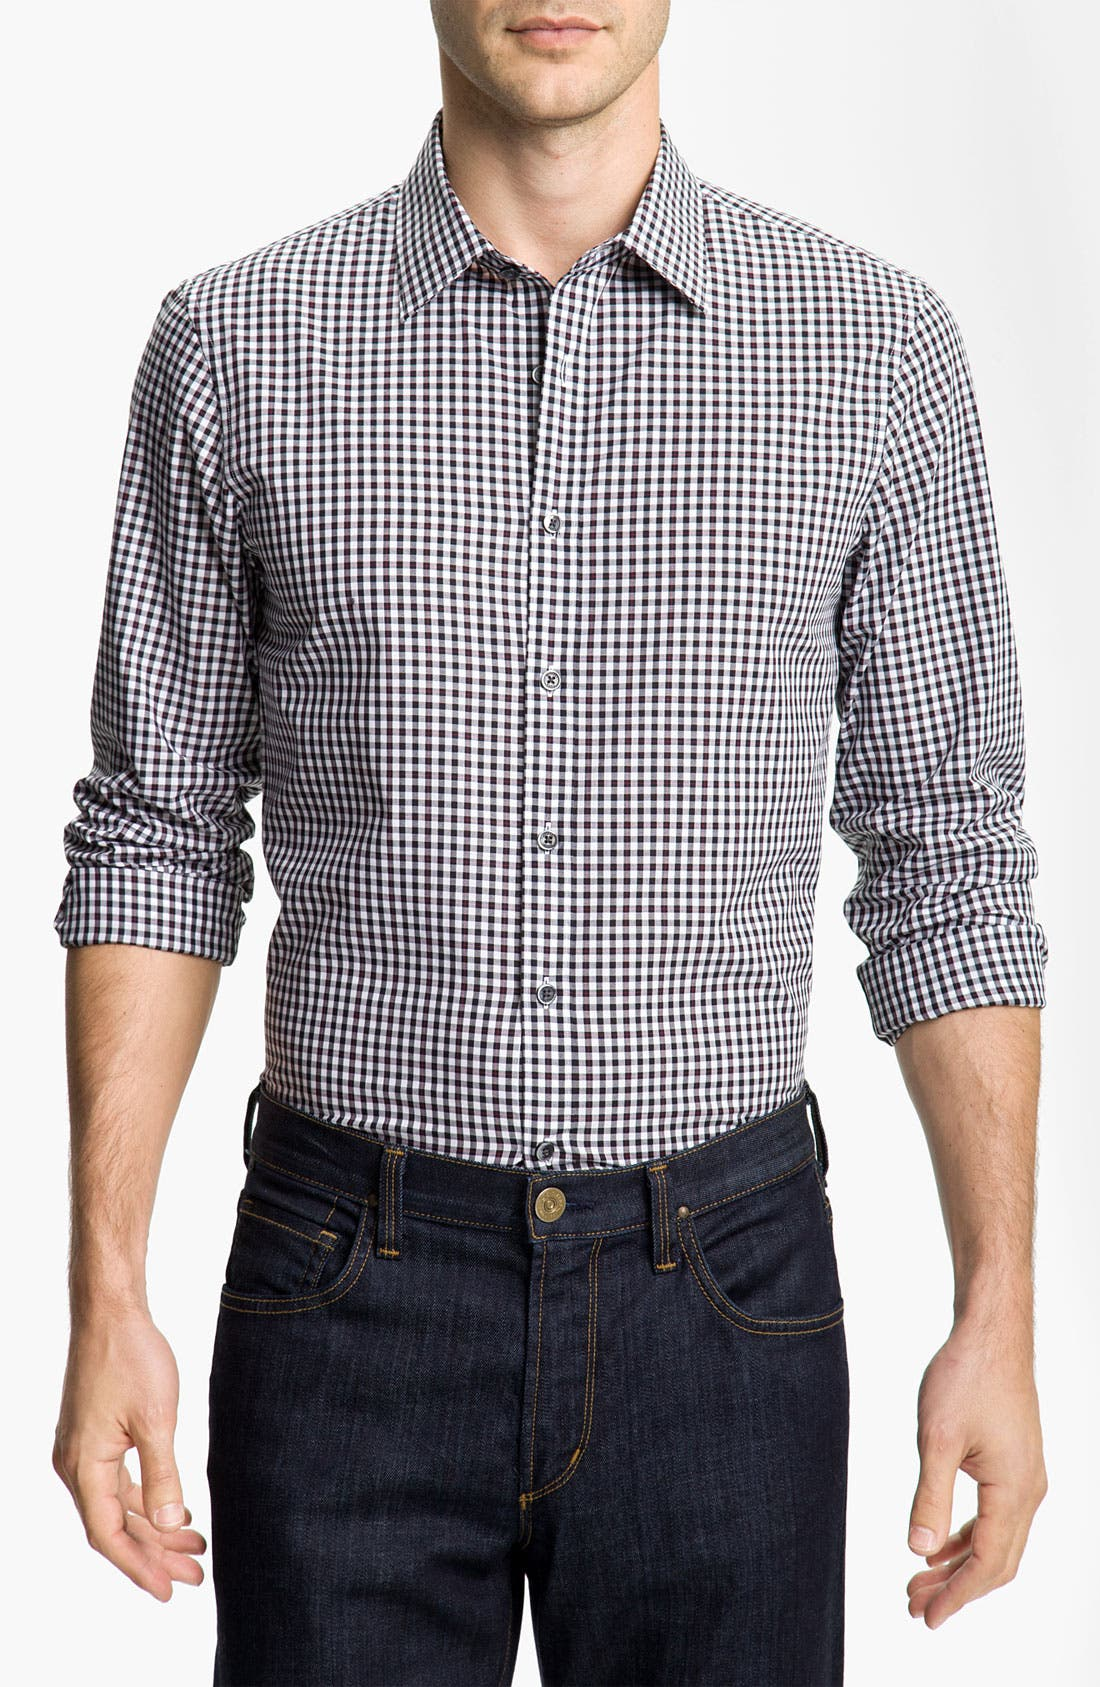 Main Image - Michael Kors 'Fairfax Check' Sport Shirt